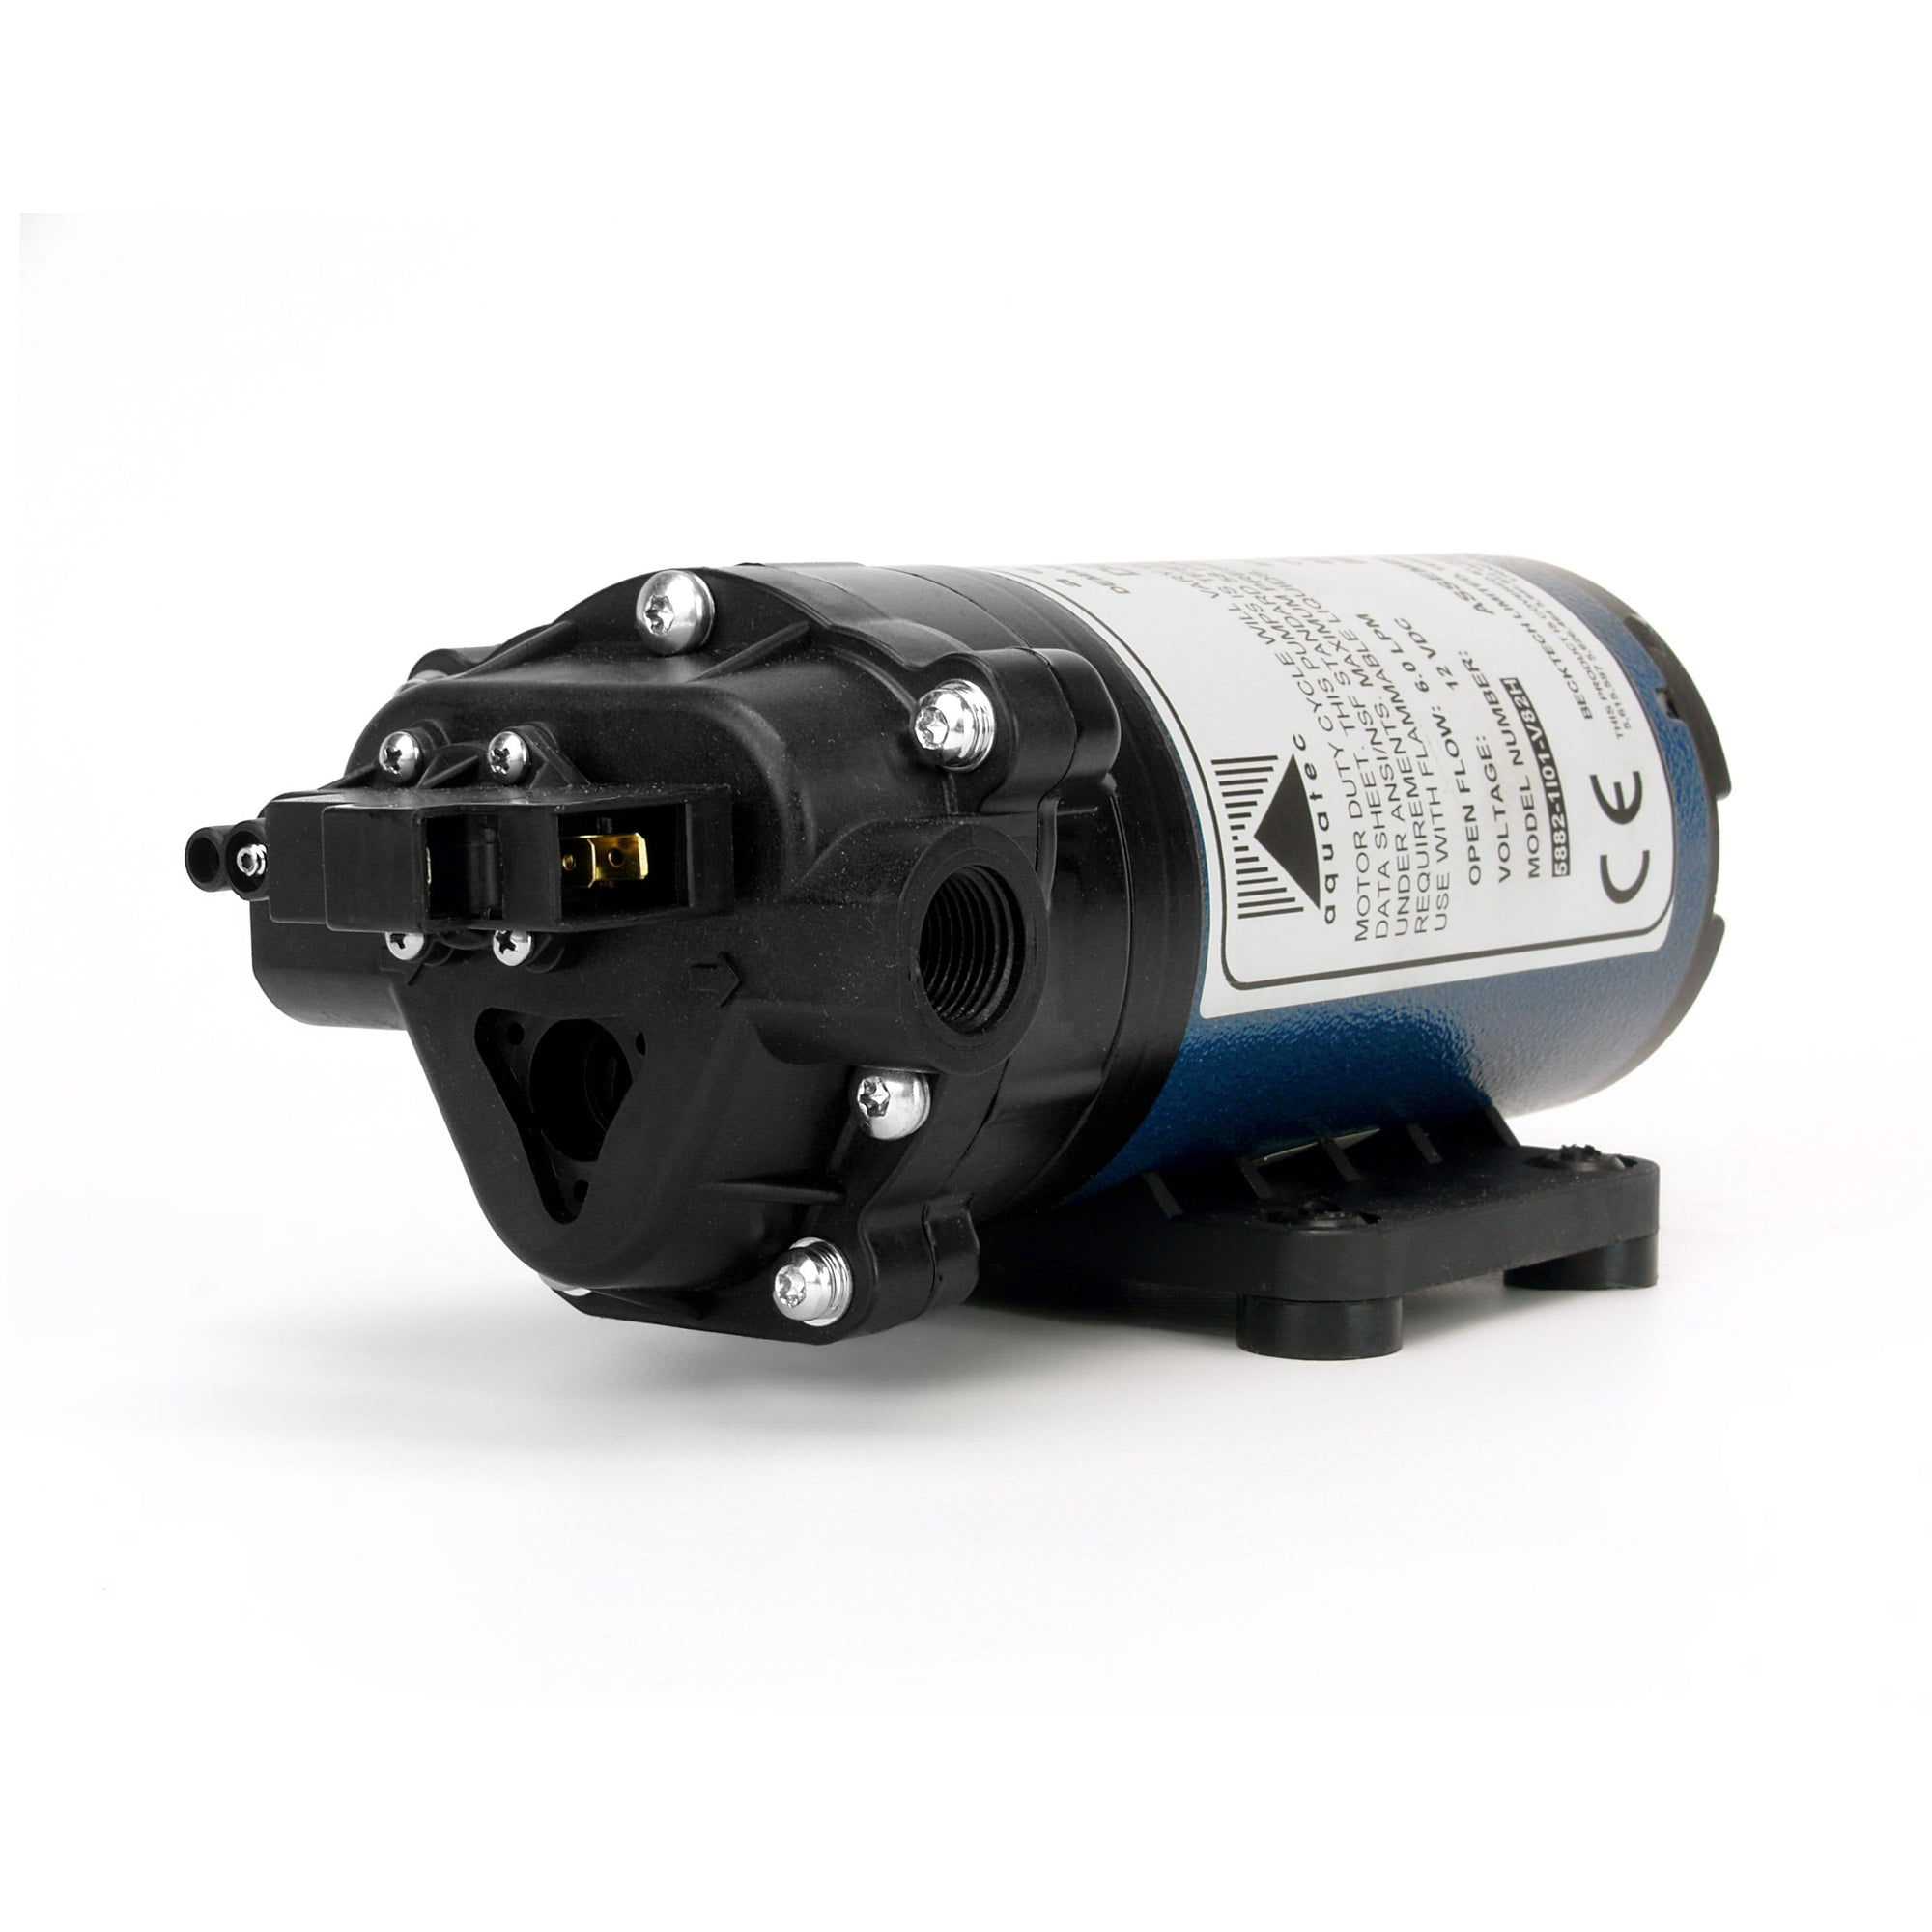 Aquatec 12V 100psi Pump - Window Cleaning Warehouse Ltd